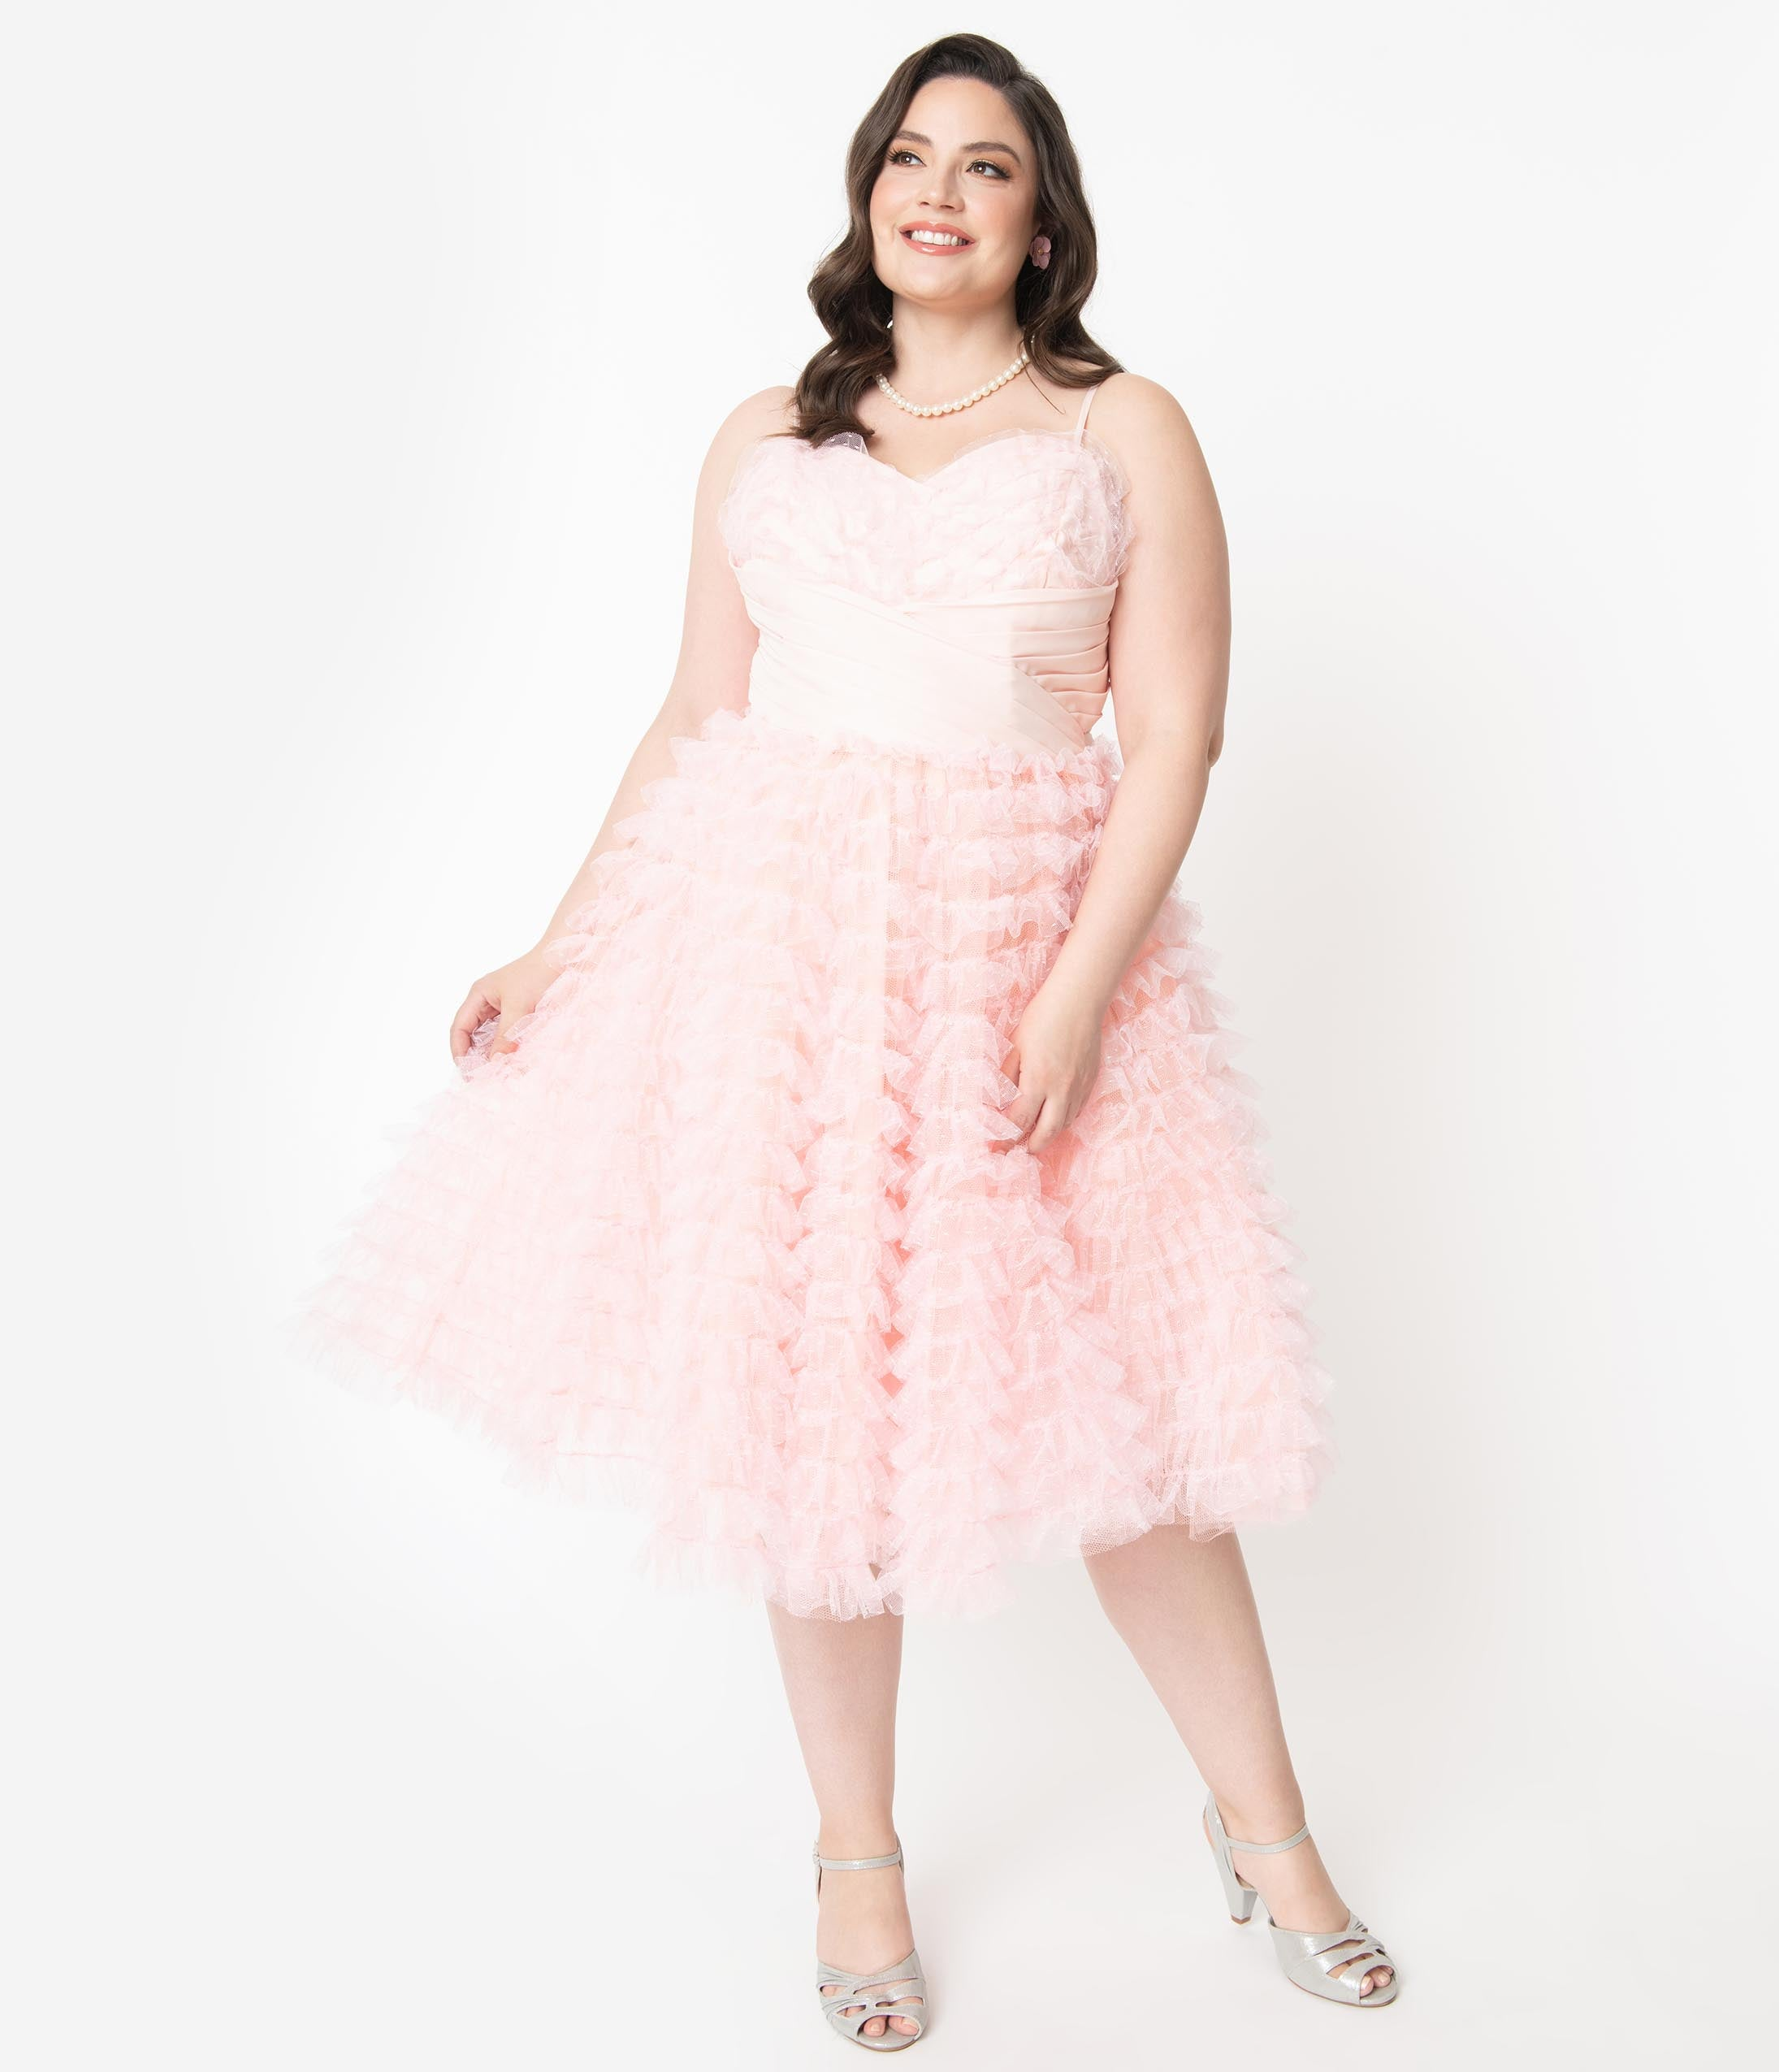 1950s Dresses, 50s Dresses | 1950s Style Dresses Unique Vintage Plus Size 1950S Pale Pink Ruffled Tulle Sweetheart Cupcake Swing Dress $110.00 AT vintagedancer.com